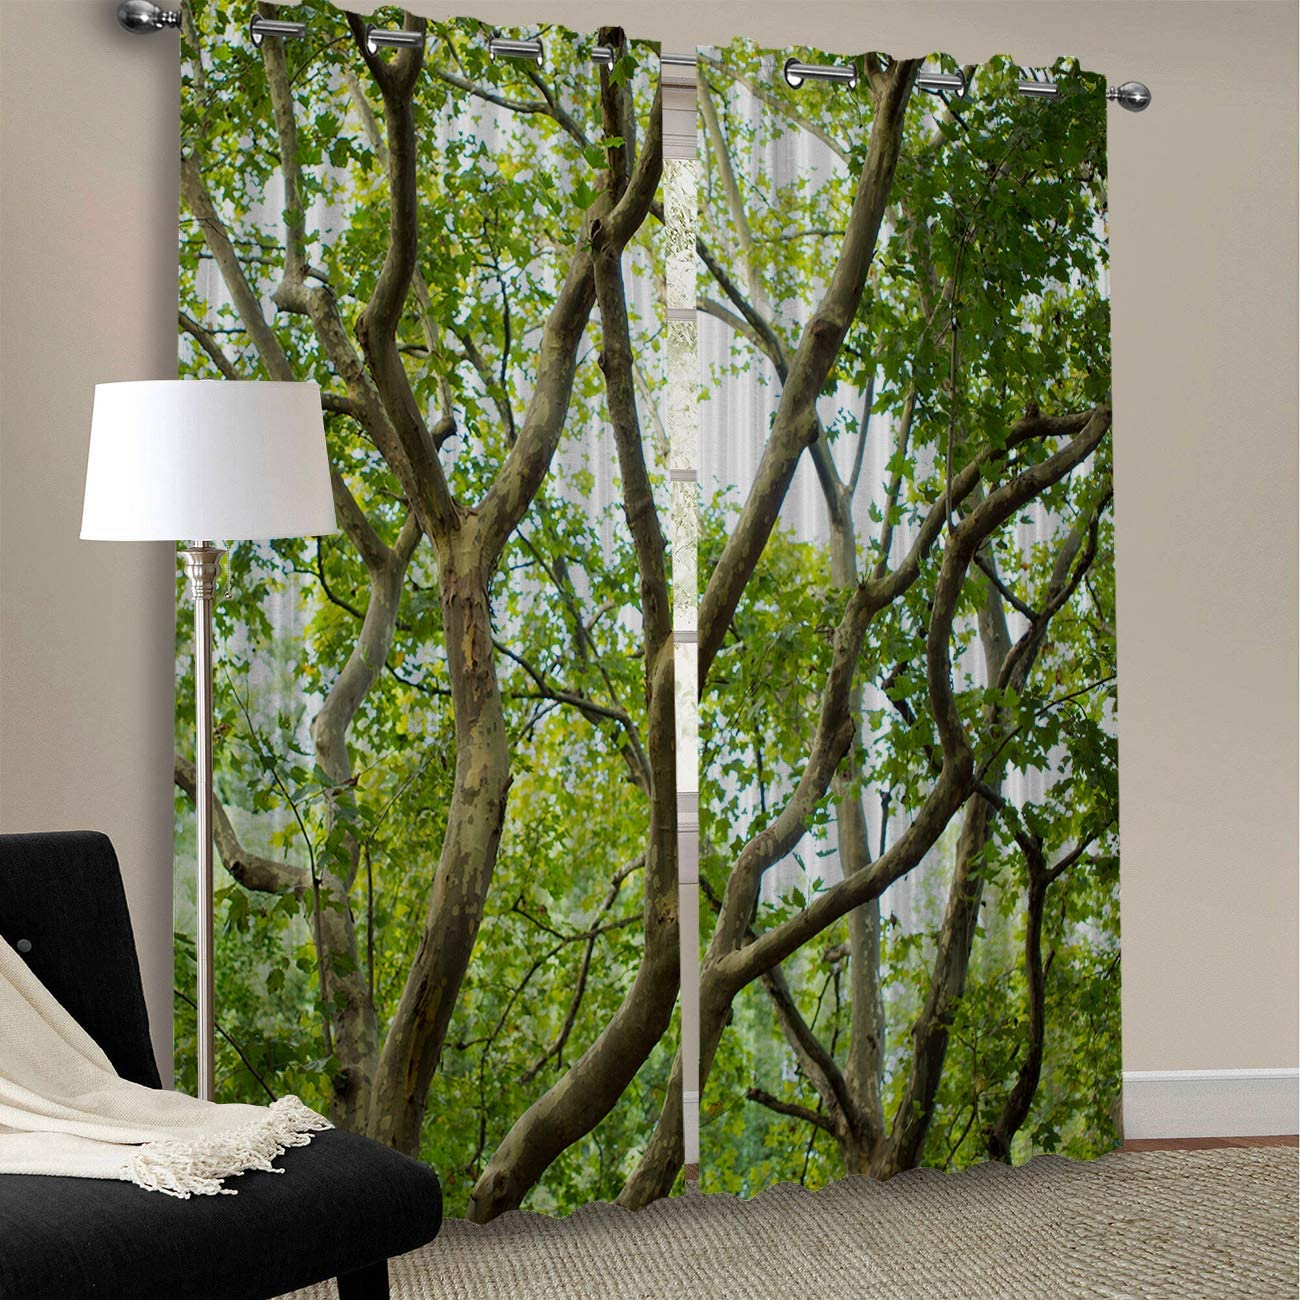 Blackout Curtains for Bedroom Thermal Insulated Room Darkening Grommet Window Treatment Drapes Living Room – 2 Panels Set,Green Tree Forest Woodland Spring Natural Scenery Art Print 52 x 84